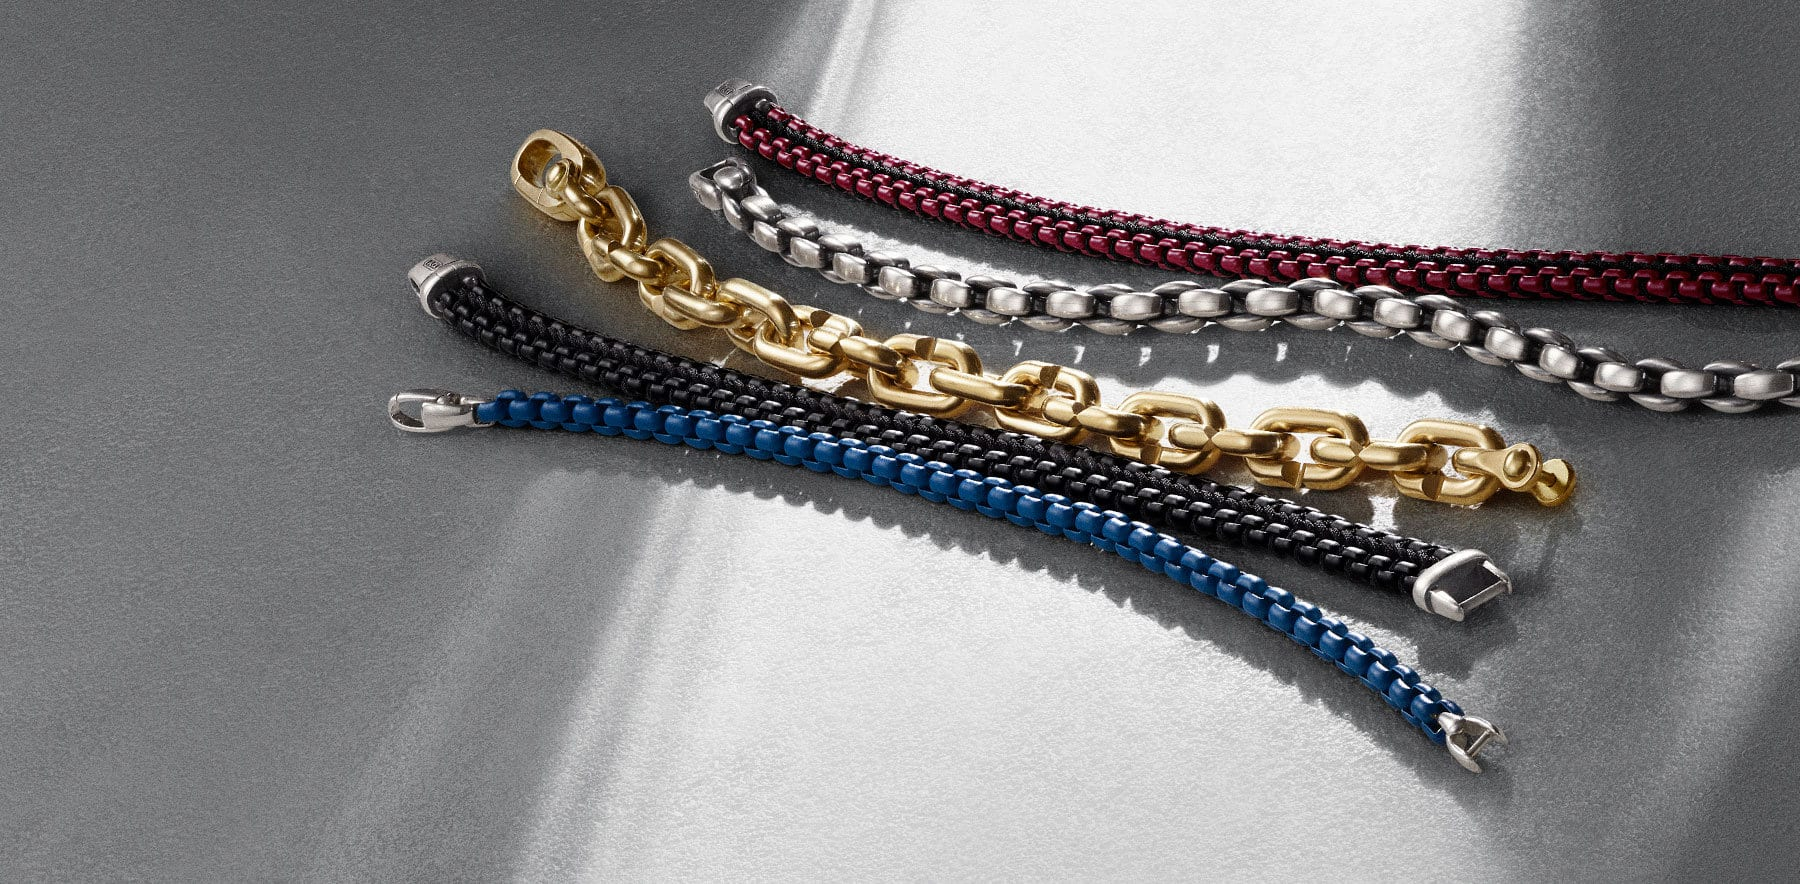 Men's DY Bel Aire and Chain bracelets in blue stainless steel, black stainless steel and black nylon, 18K yellow gold, sterling silver and a burgundy stainless steel with black nylon, arranged in a diagonal row atop a white textured surface.